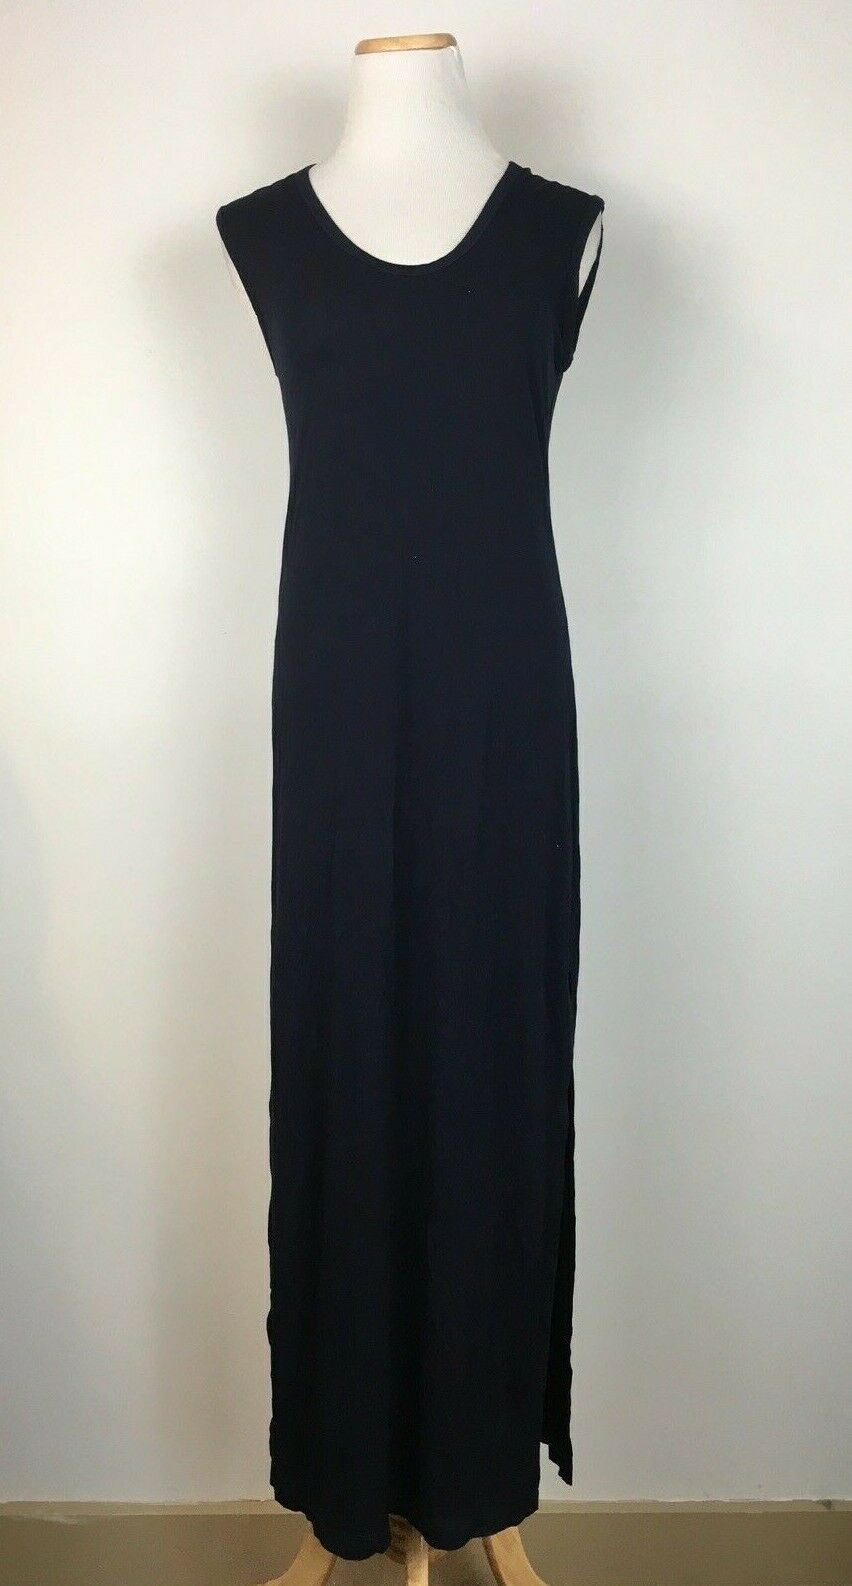 Primary image for J.Crew Women's Navy Blue Petite Maxi Tank Dress Size PXS Style C2828